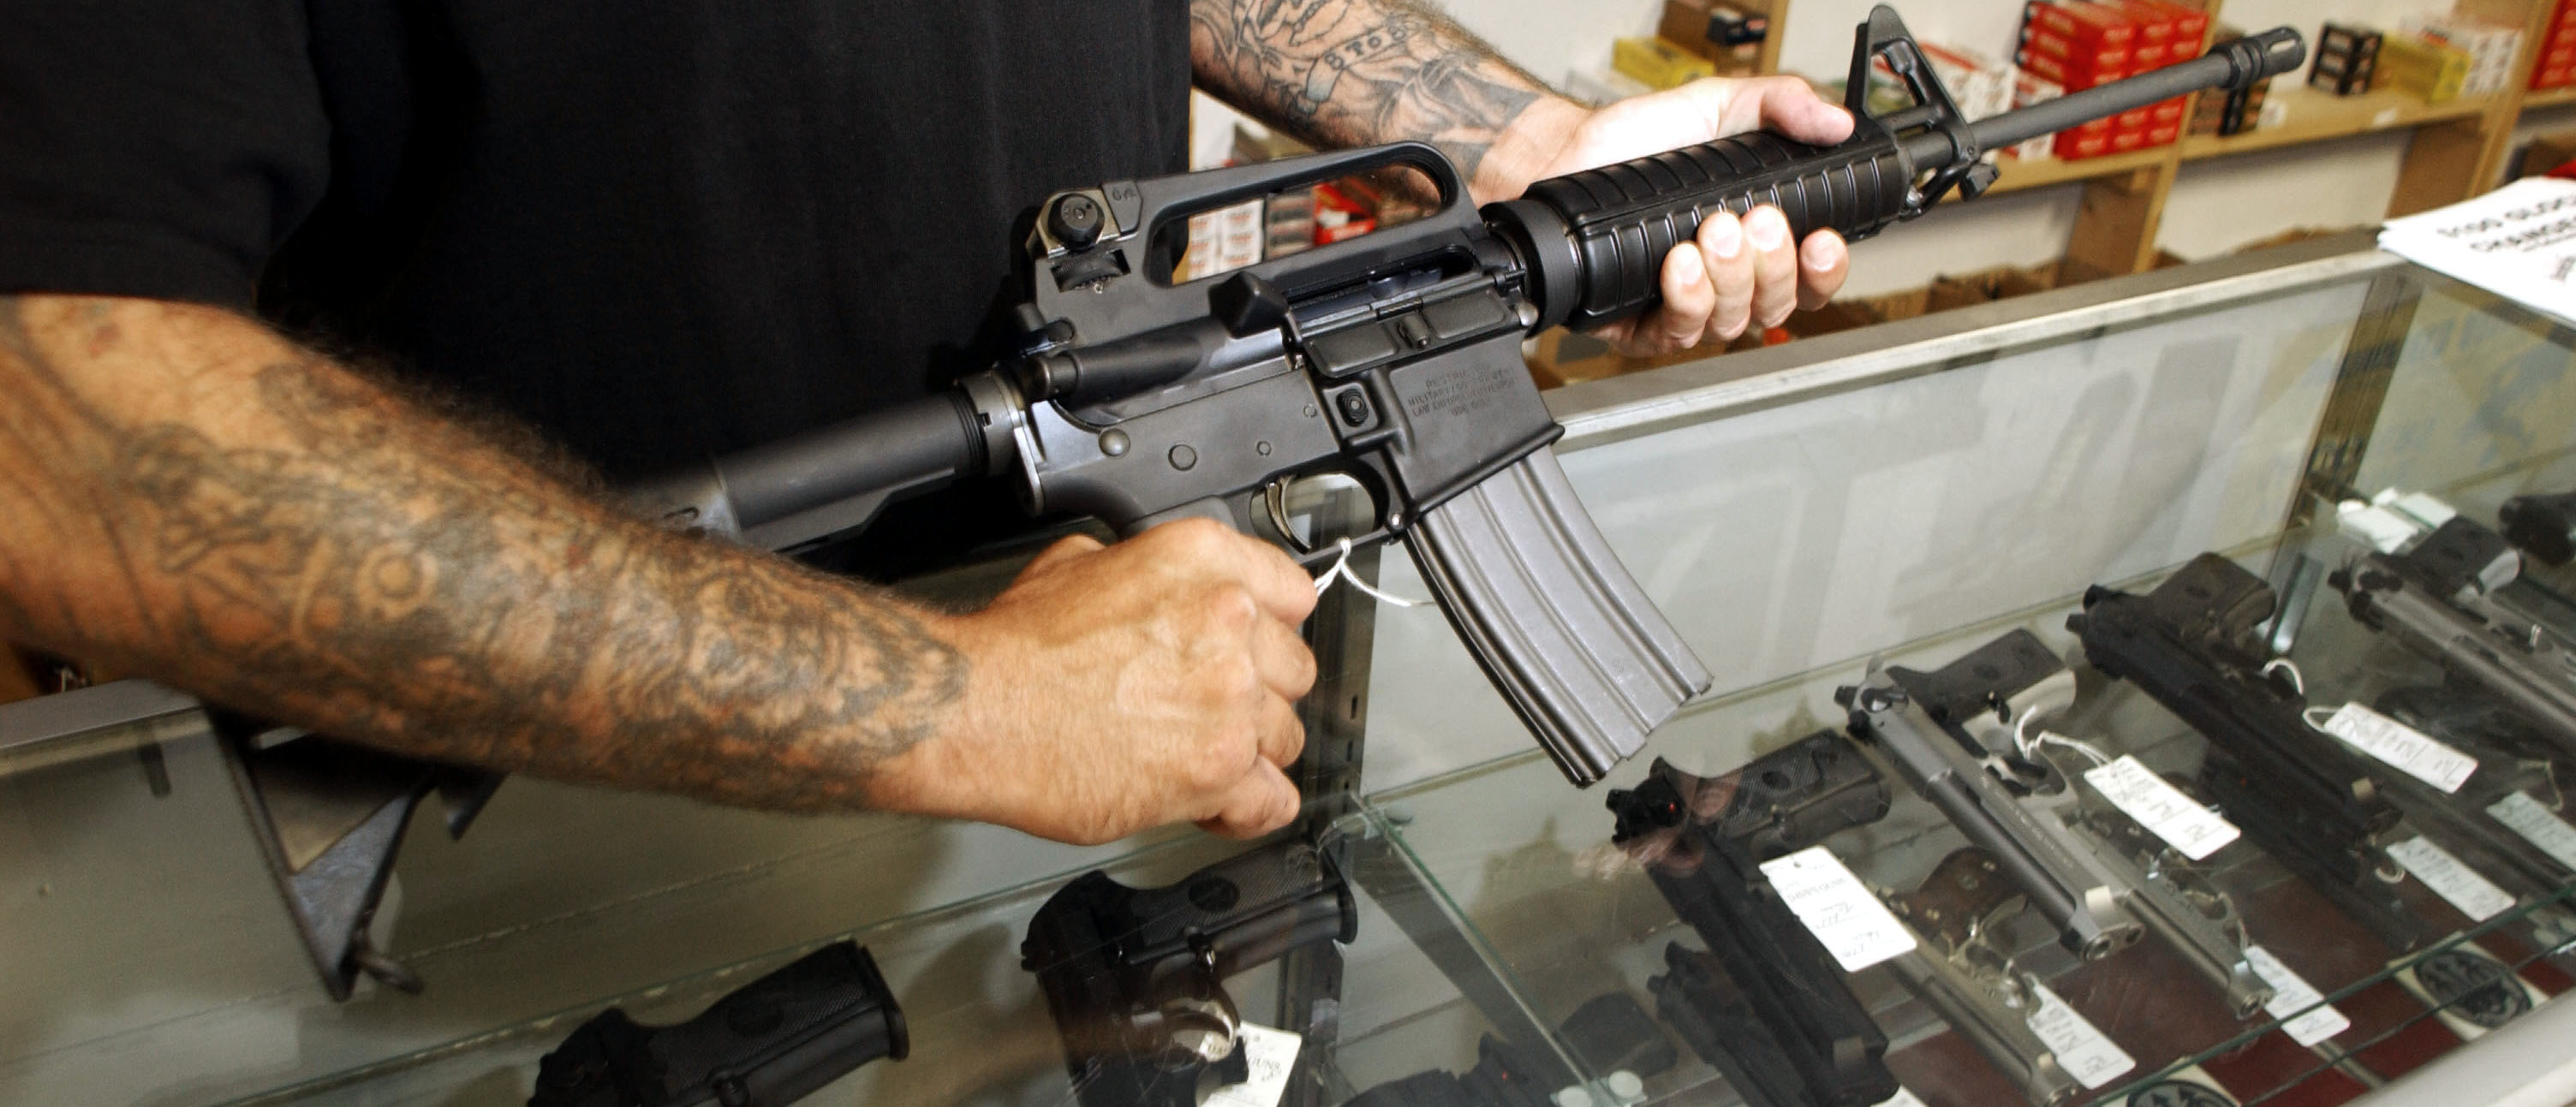 An employee of Dave's Guns holds a Colt AR-15, now legal with a bayonet mount, flash suppressor, collapsible stock and a high capacity magazine that holds more than 30 rounds, September 13, 2004 in Denver, Colorado.(Photo by Thomas Cooper/Getty Images)